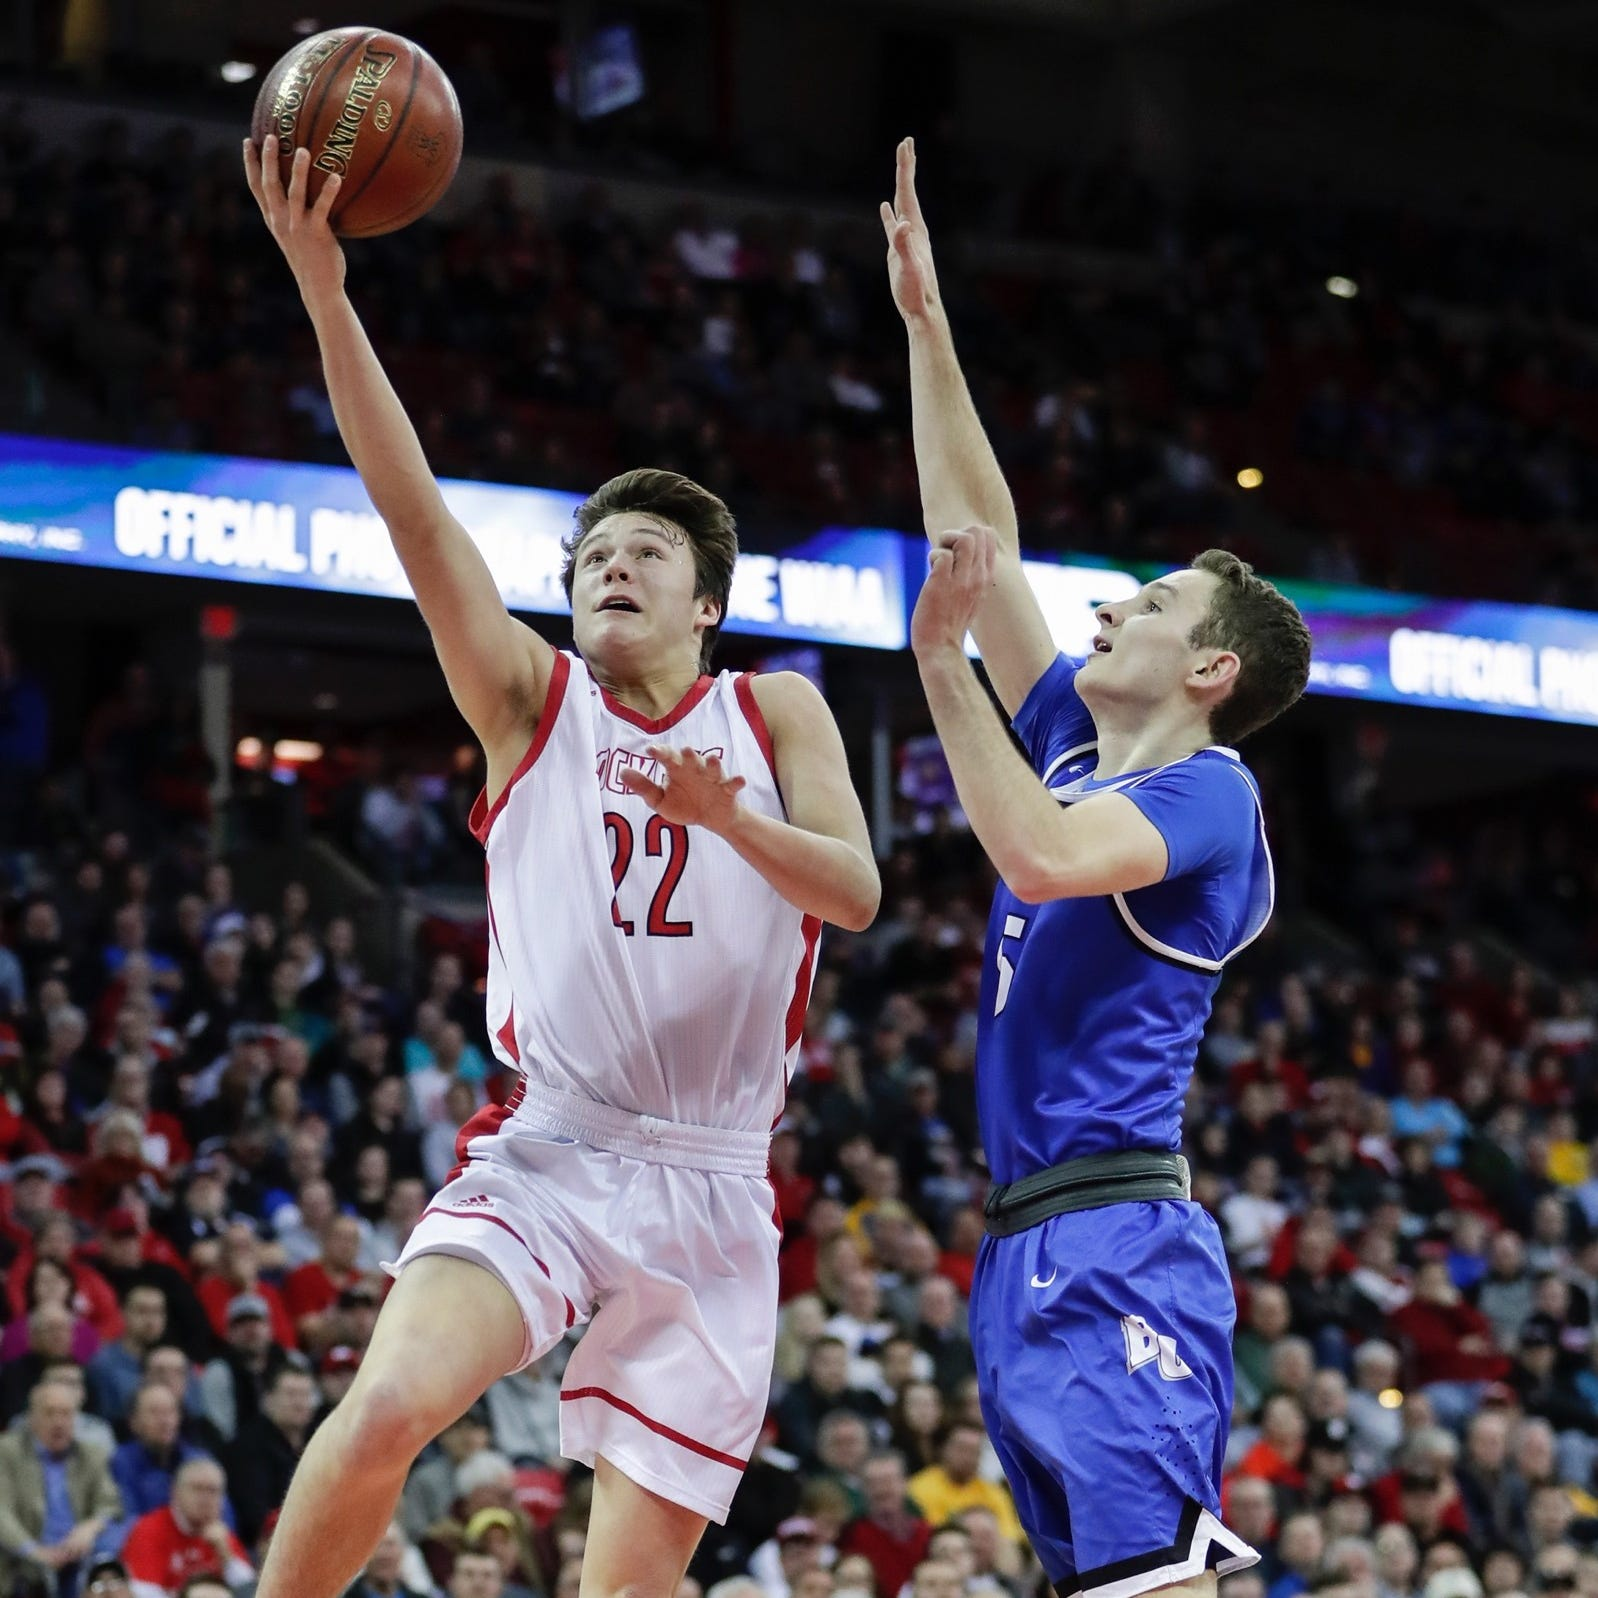 WIAA state basketball: Cold shooting dooms Neenah in semifinal loss to Brookfield Central